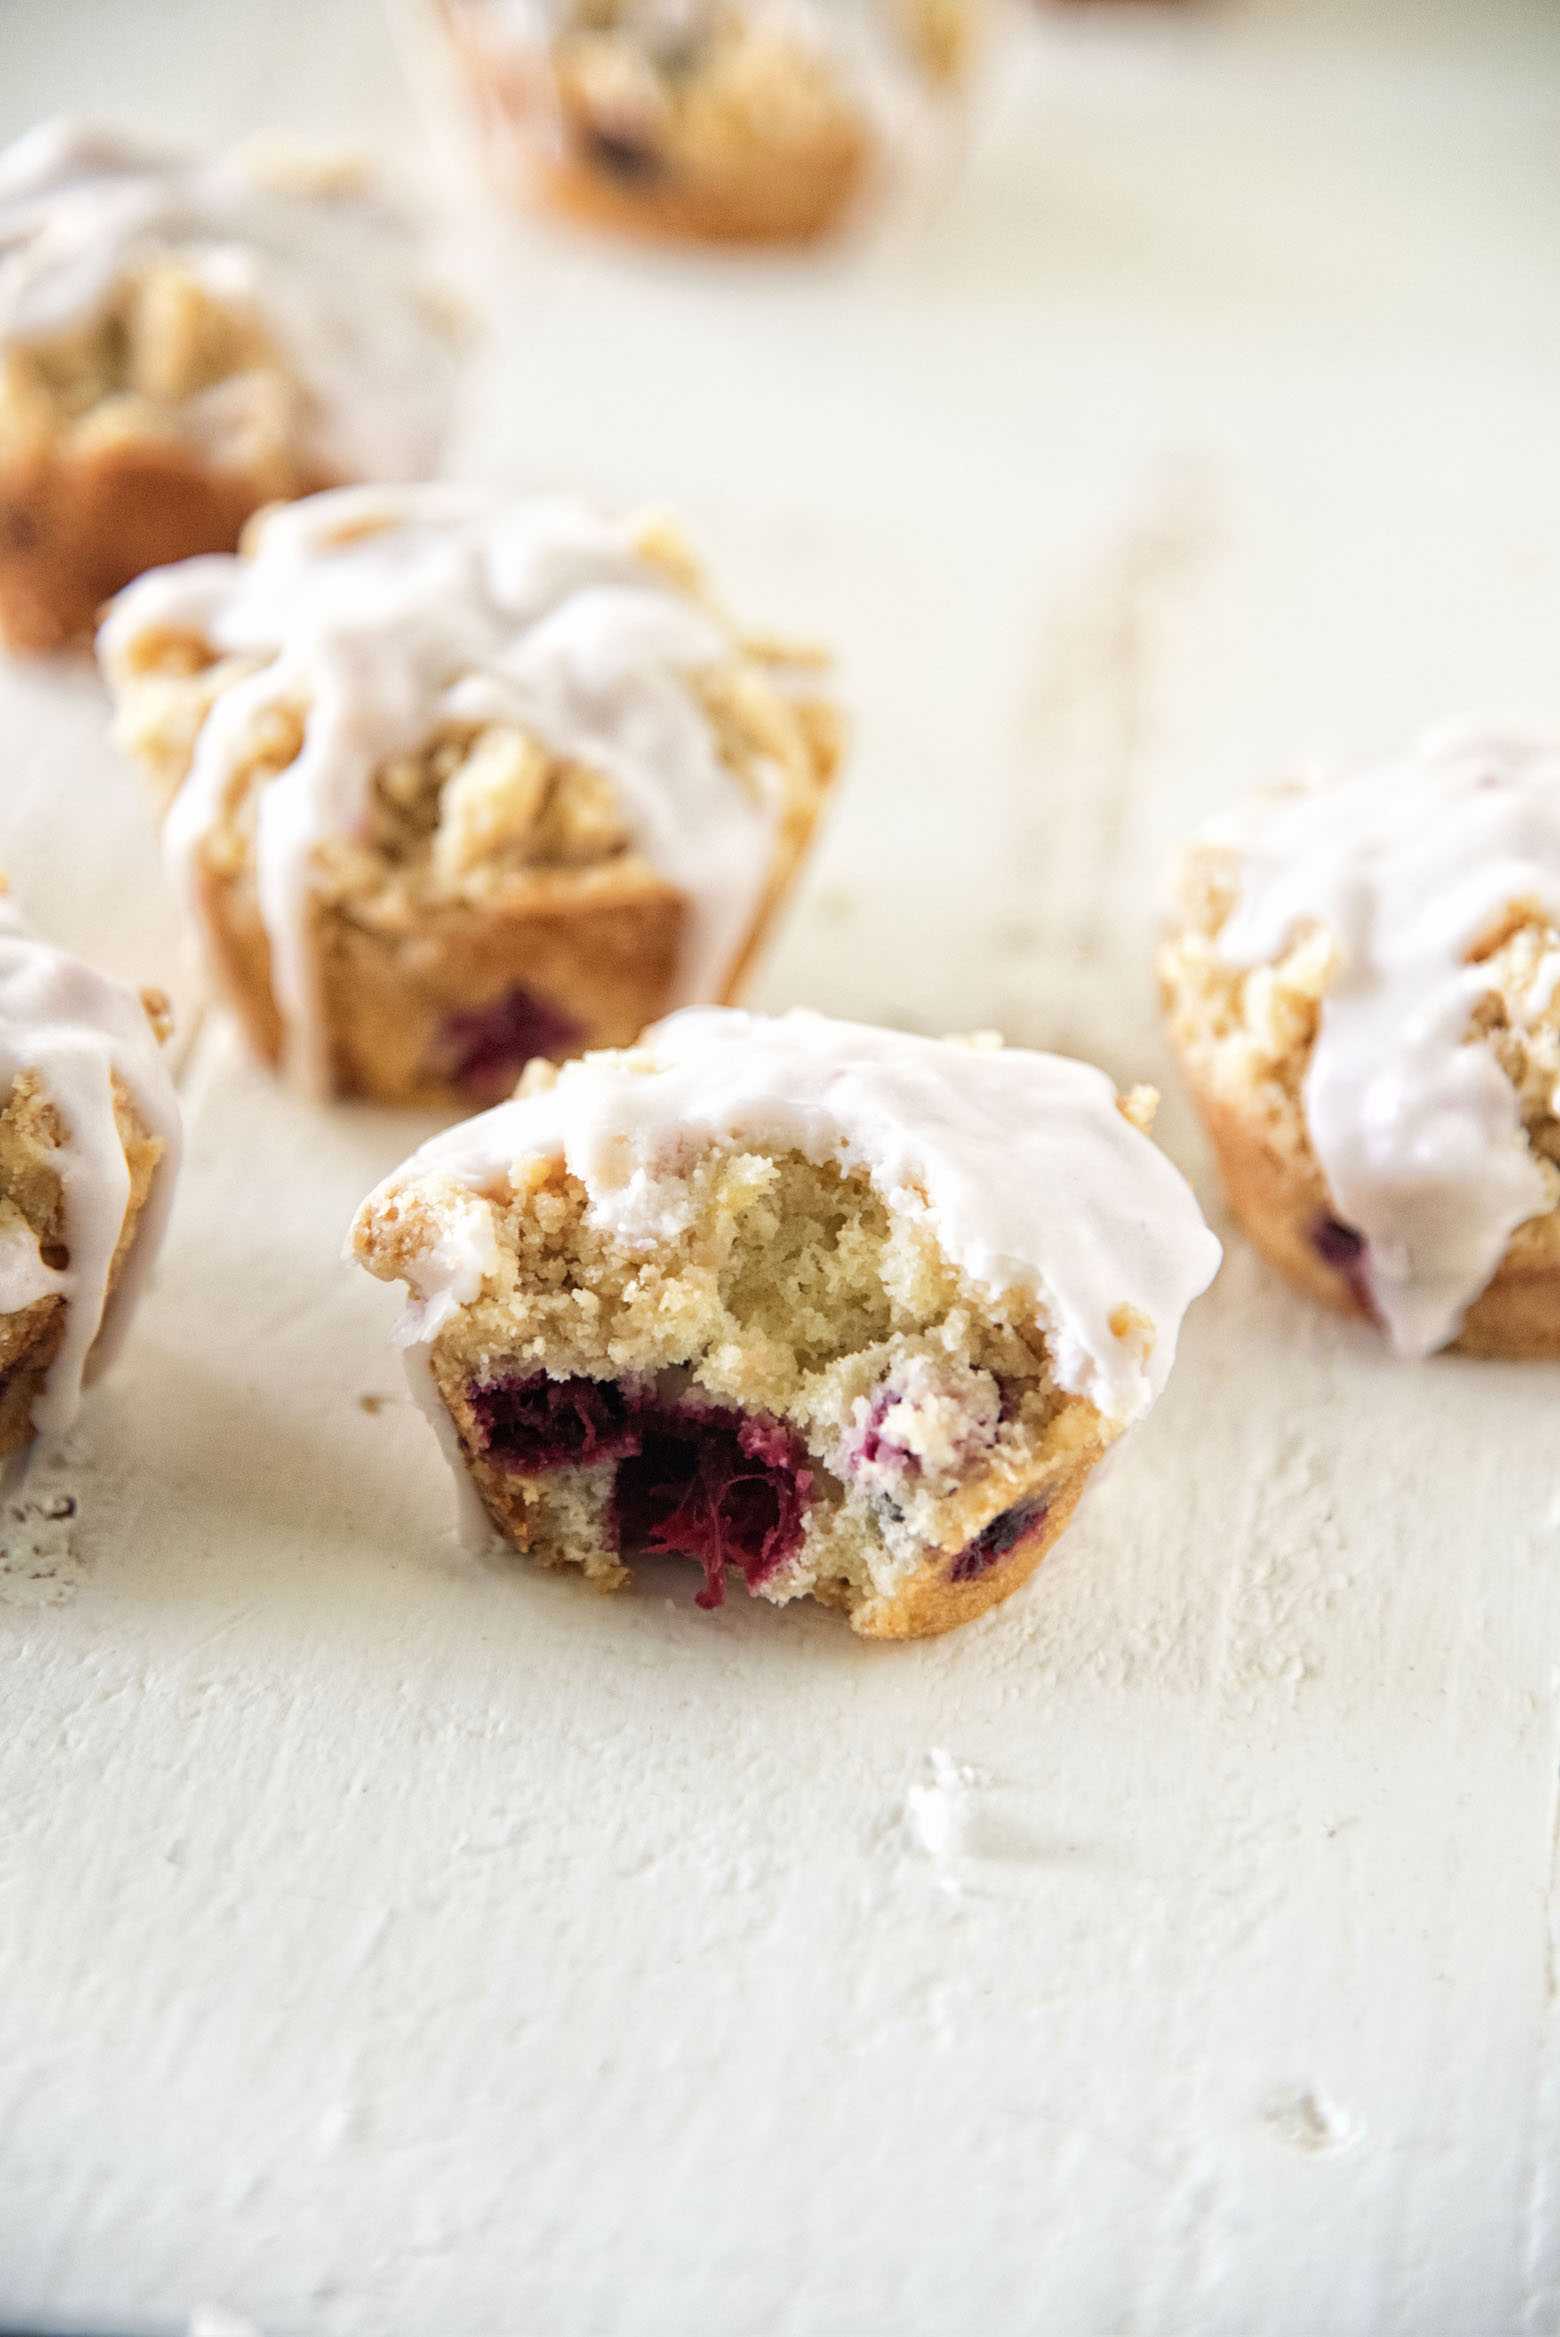 Cranberry White Chocolate Chip Crumb Topped Muffins